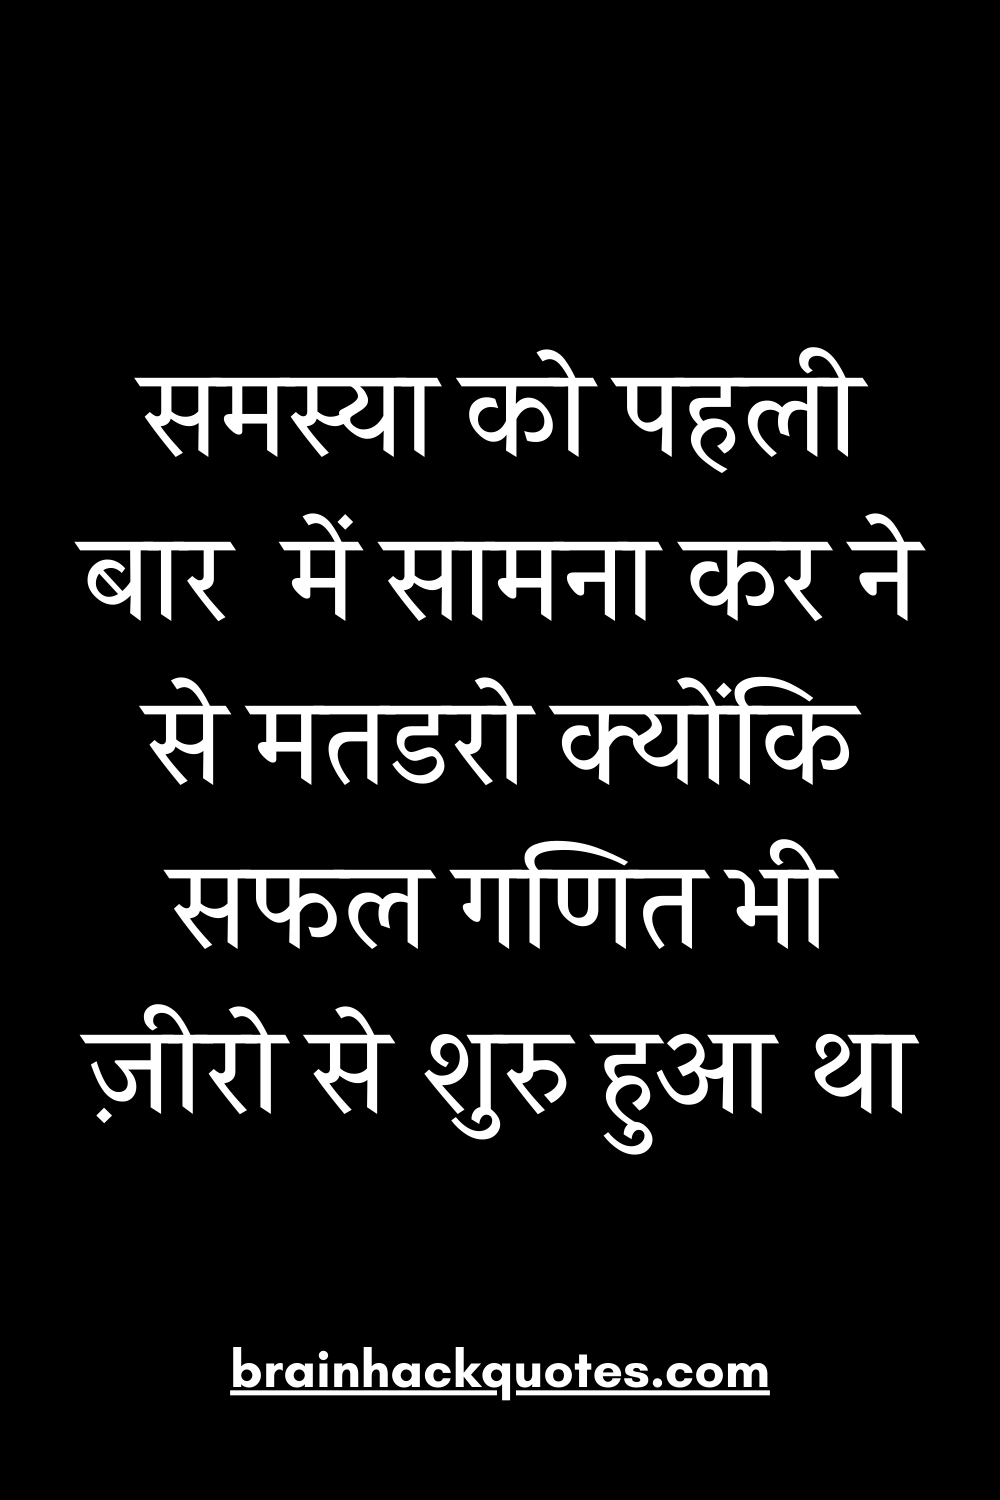 student hindi motivational inspirational quotes in 2020